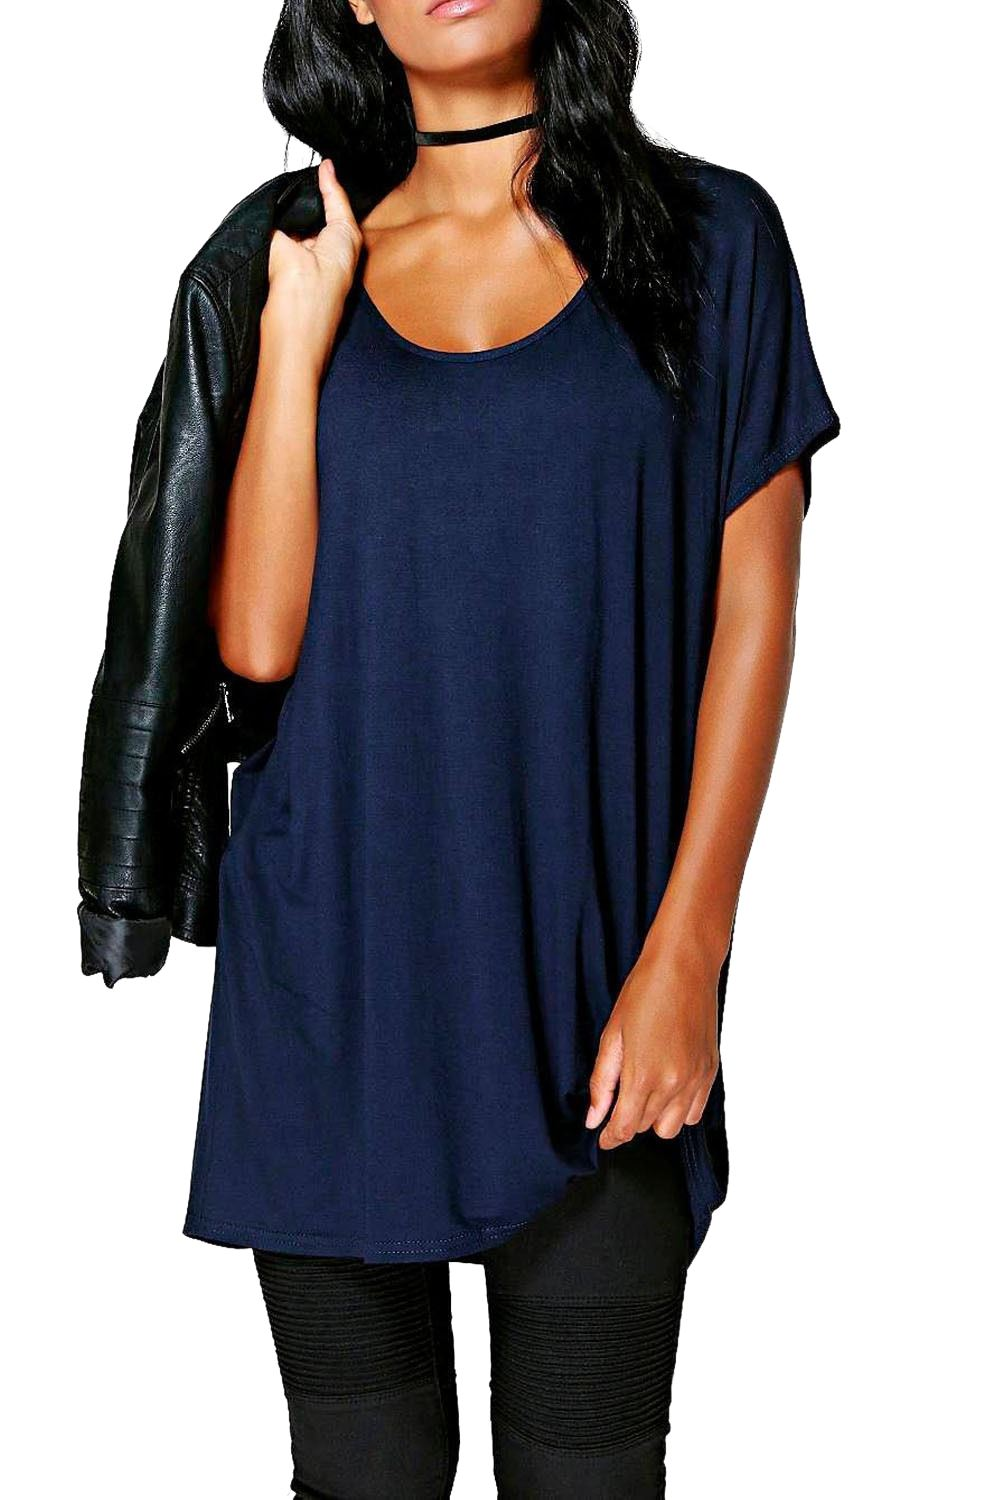 New-Womens-Plain-Slash-Neck-Off-Shoulder-Short-Sleeve-Baggy-Oversize-T-Shirt-Top